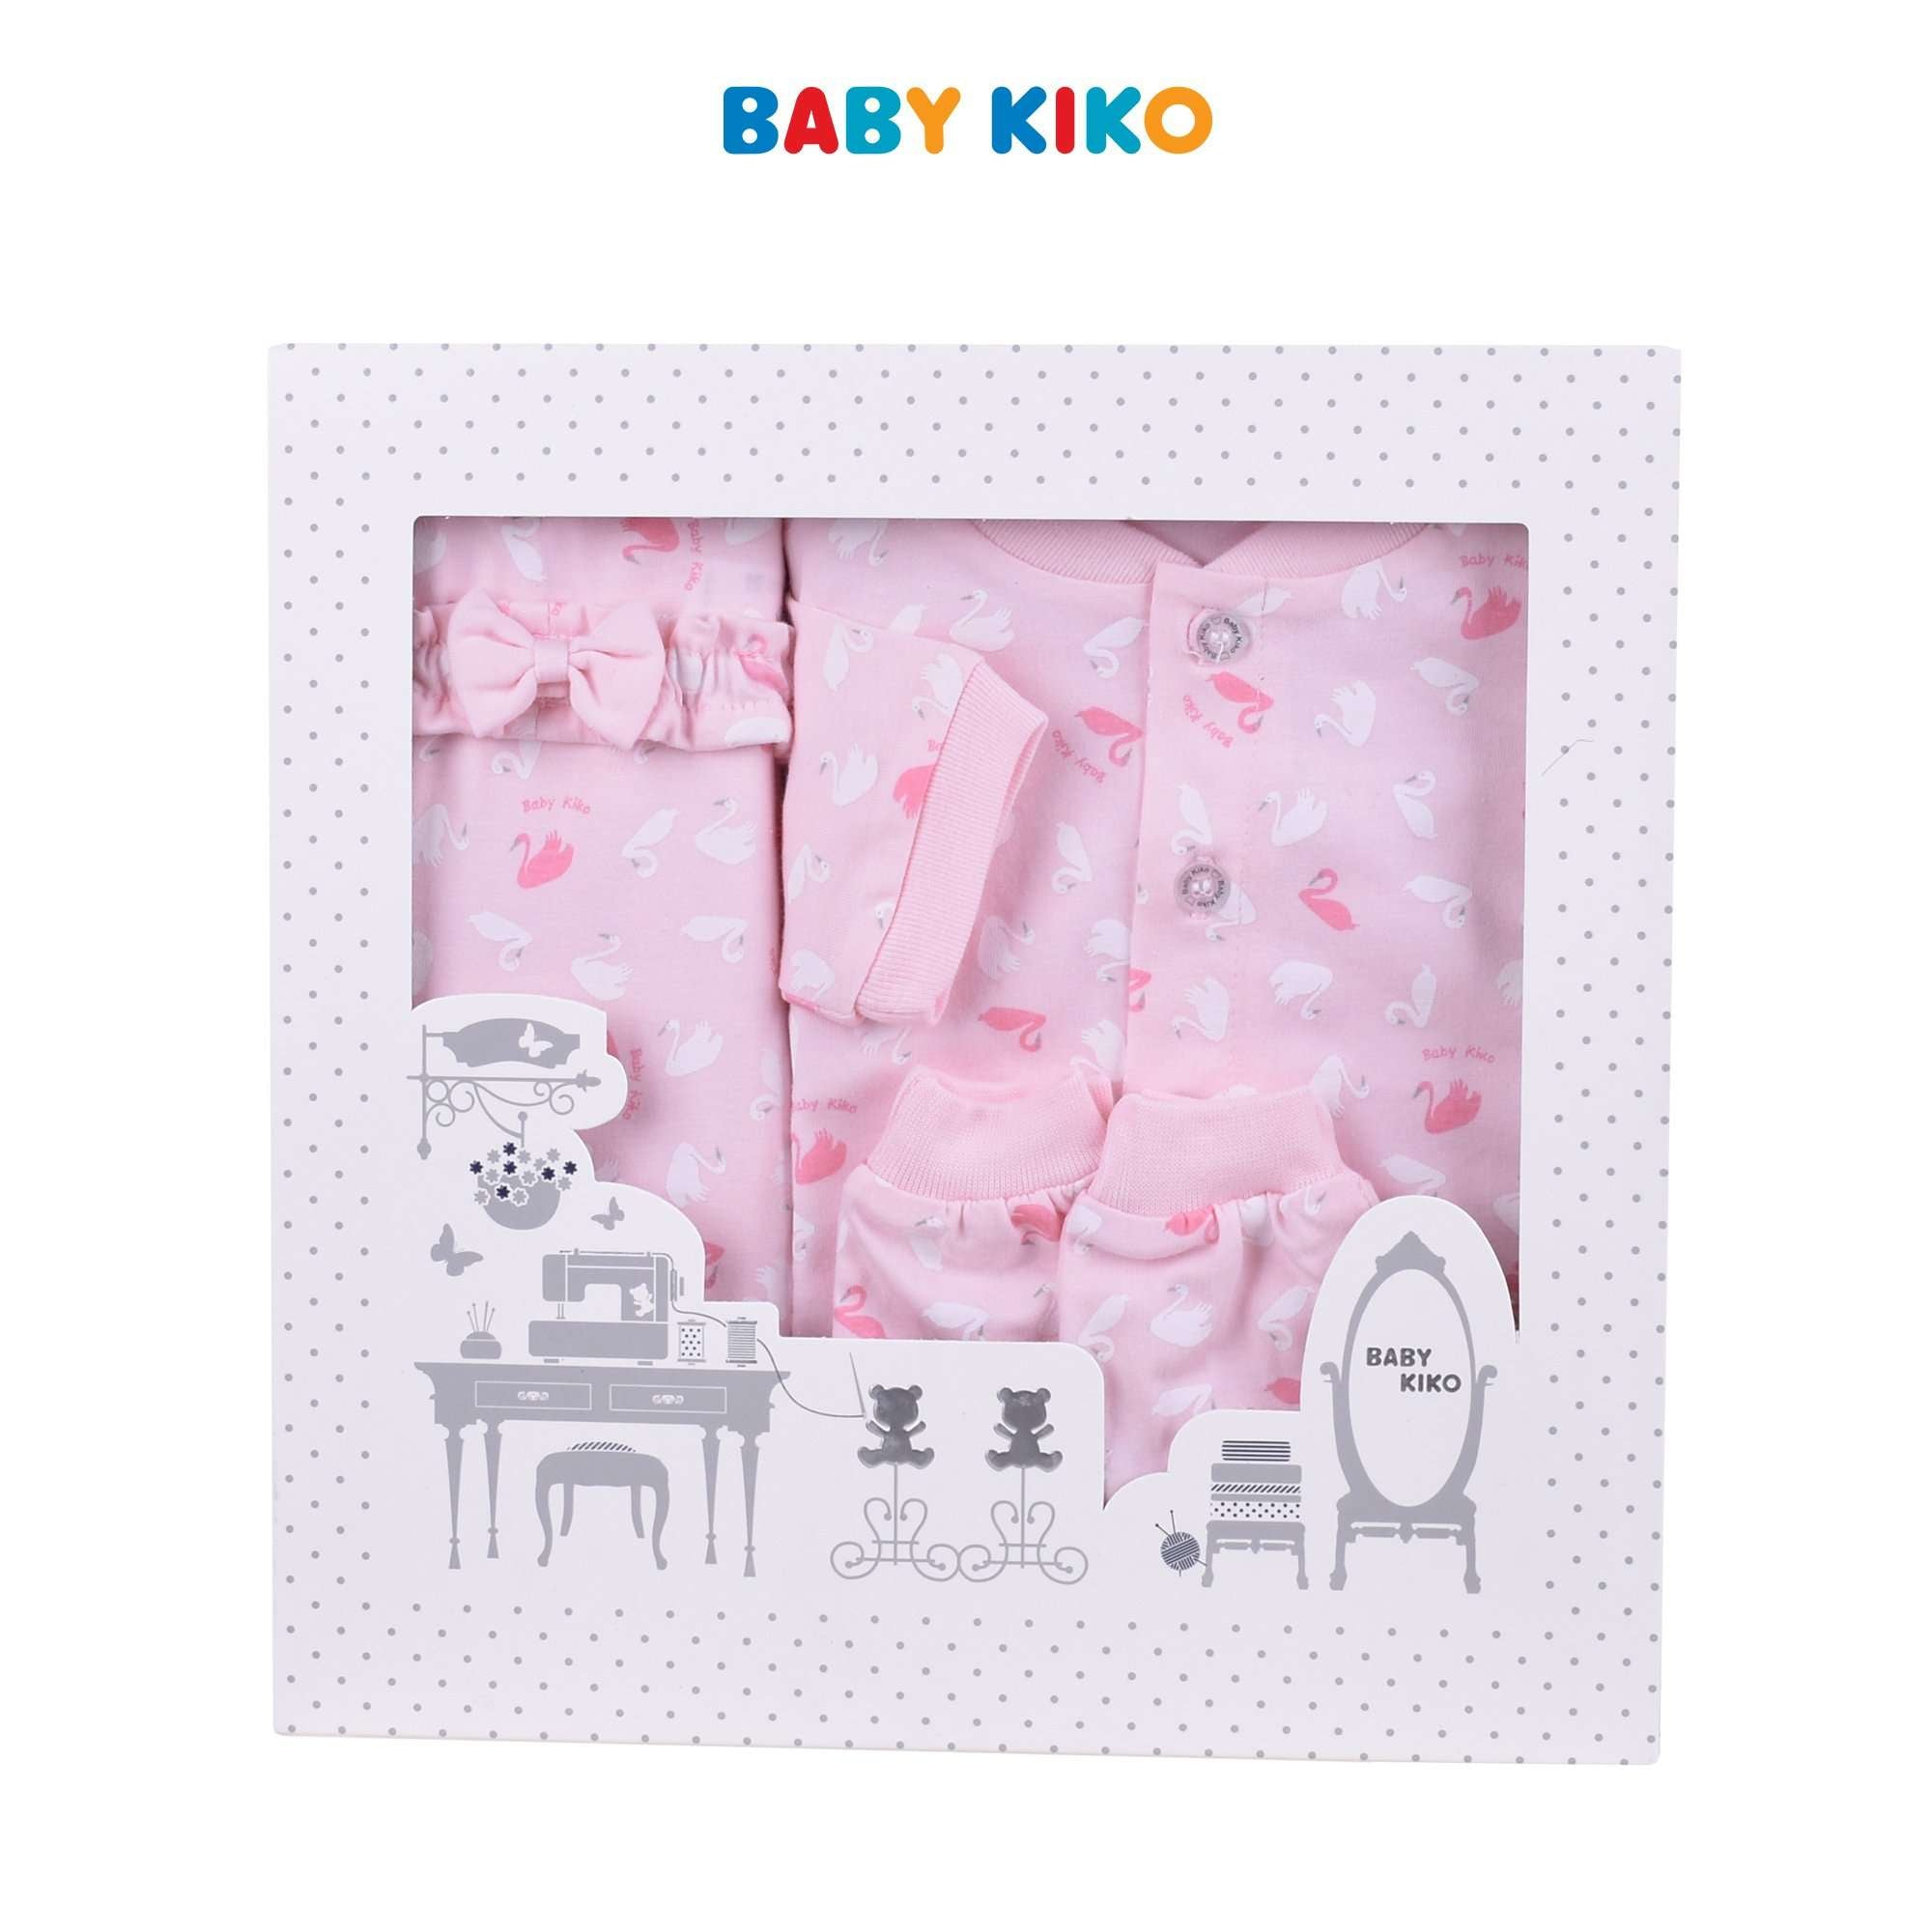 Baby KIKO New Born Baby Girl Gift Set 320167-601 : Buy Baby KIKO online at CMG.MY